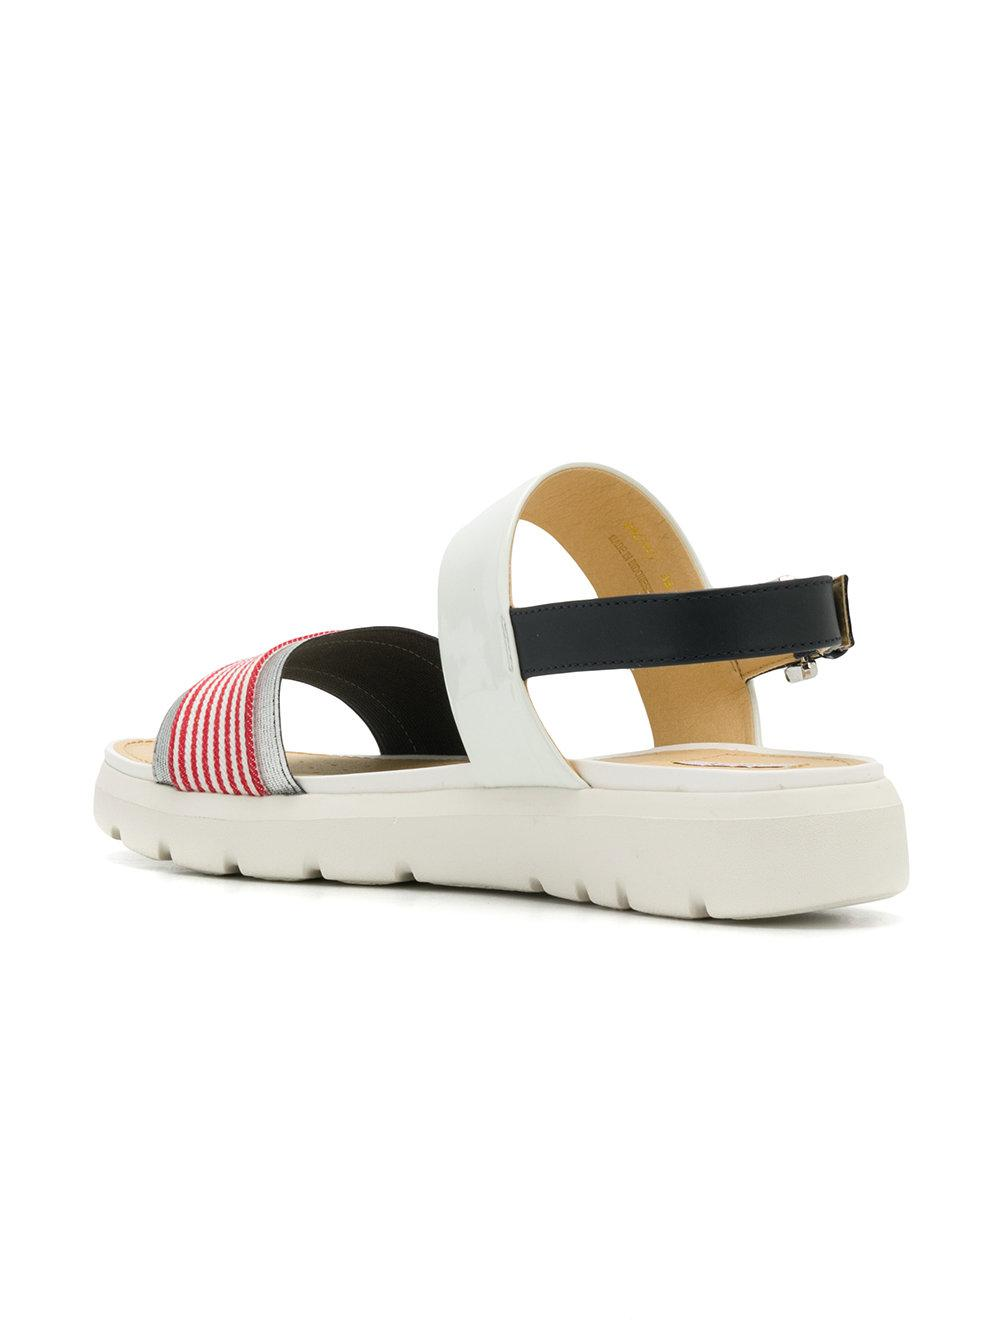 Amalitha sandals - Multicolour Geox Outlet Perfect P9Ykyvpo